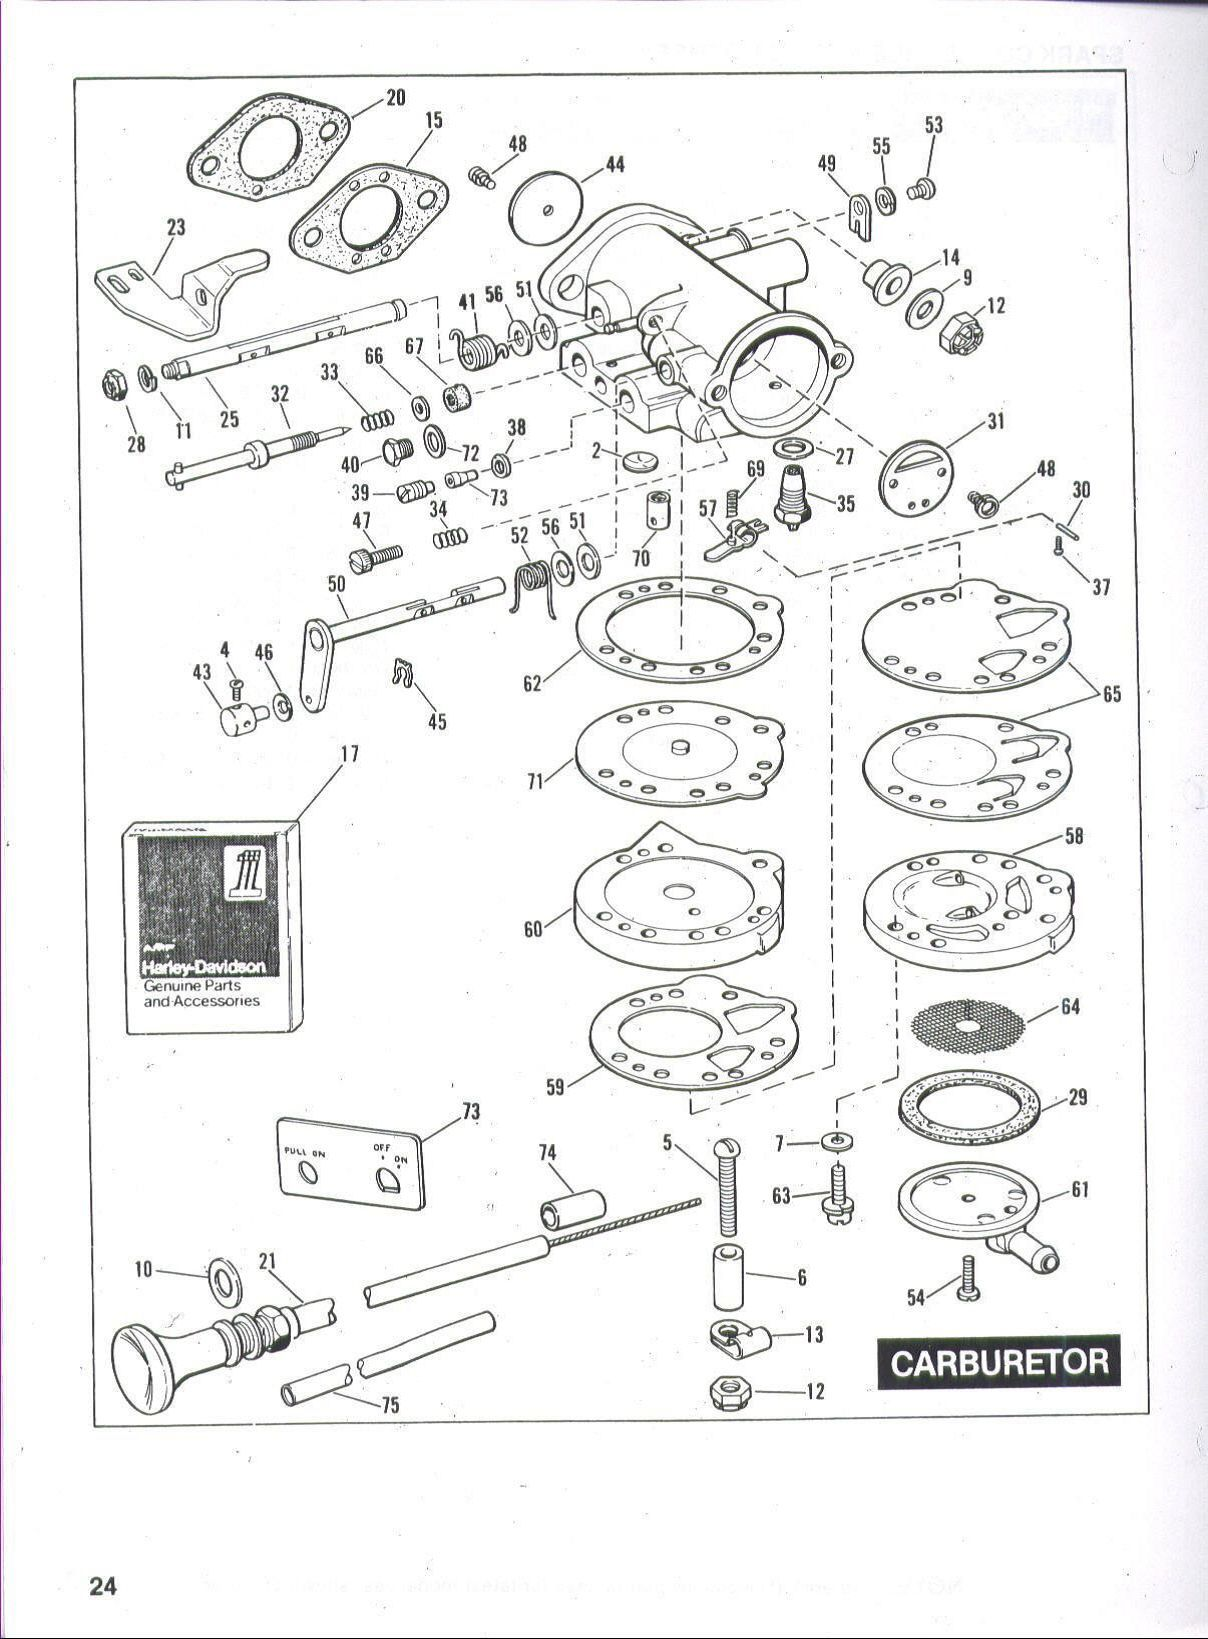 5176dbb44702a1adc4080edf7301936d harley davidson golf cart carburetor diagram utv stuff amf harley davidson golf cart wiring diagram at virtualis.co